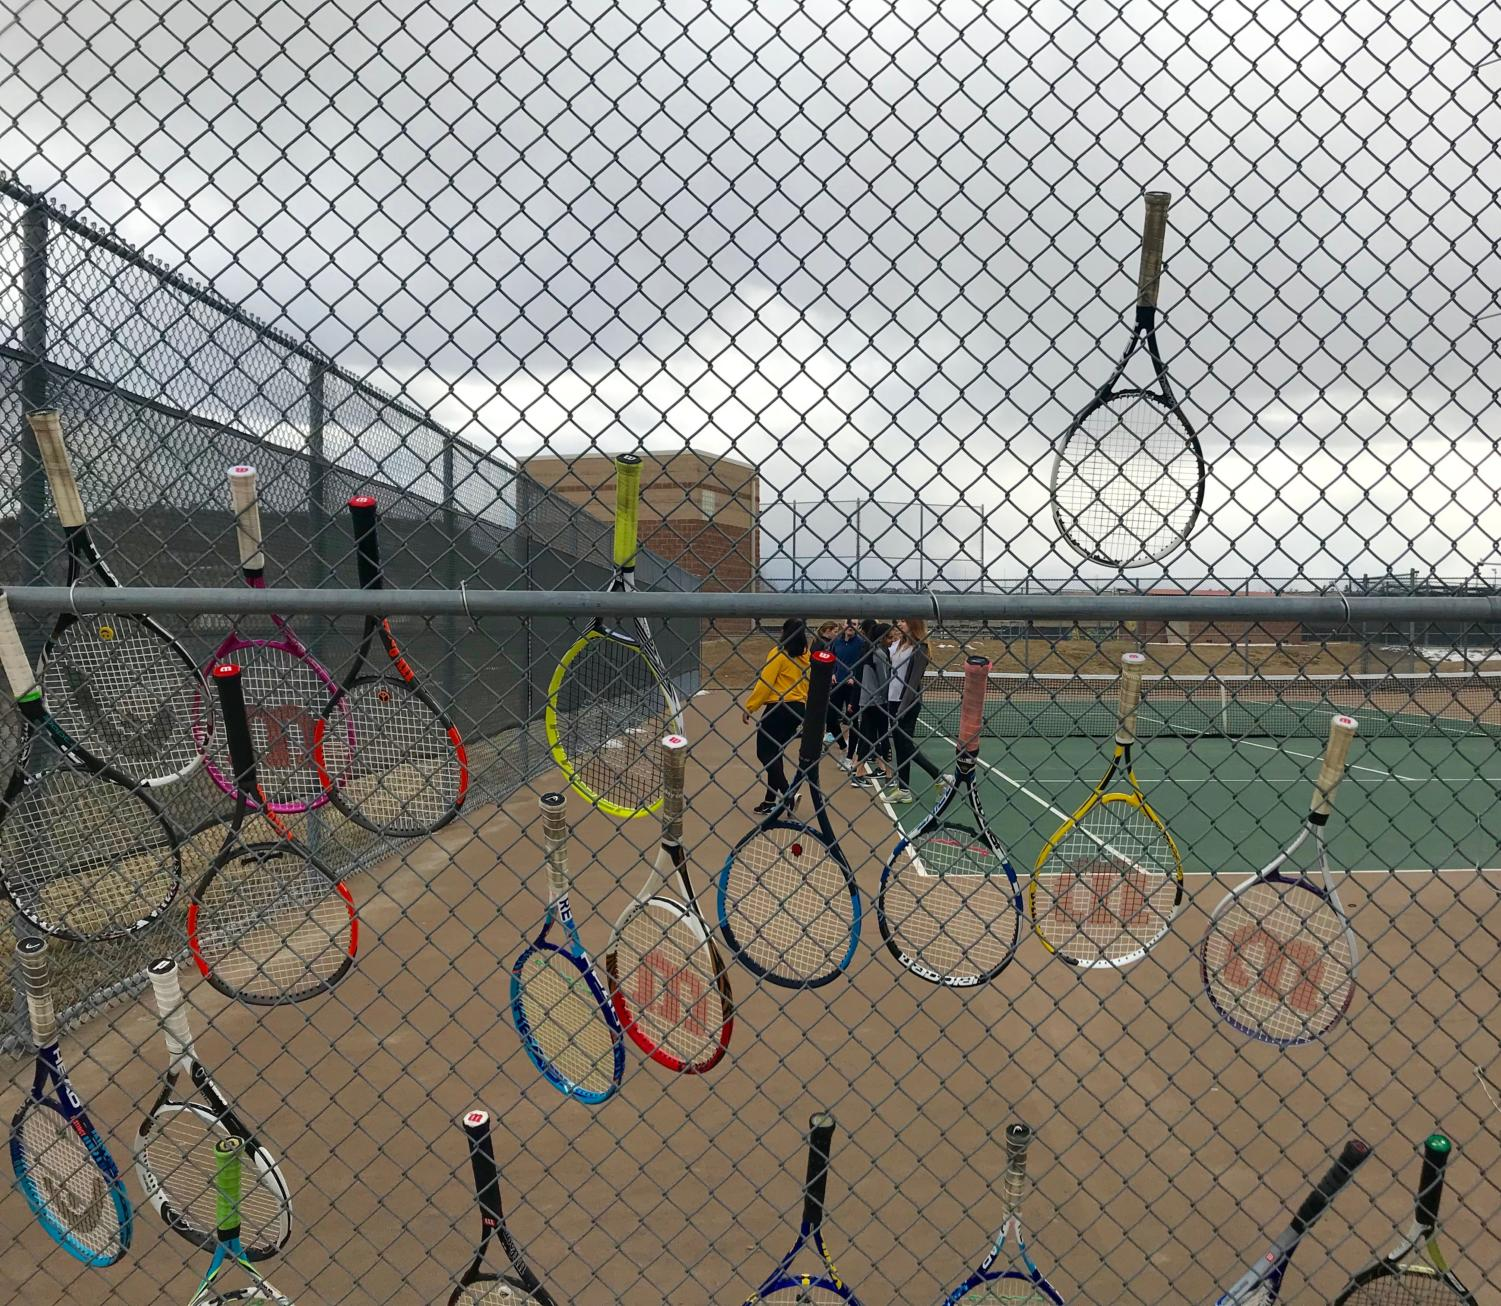 Tennis players hang their rackets on the fence during practice.